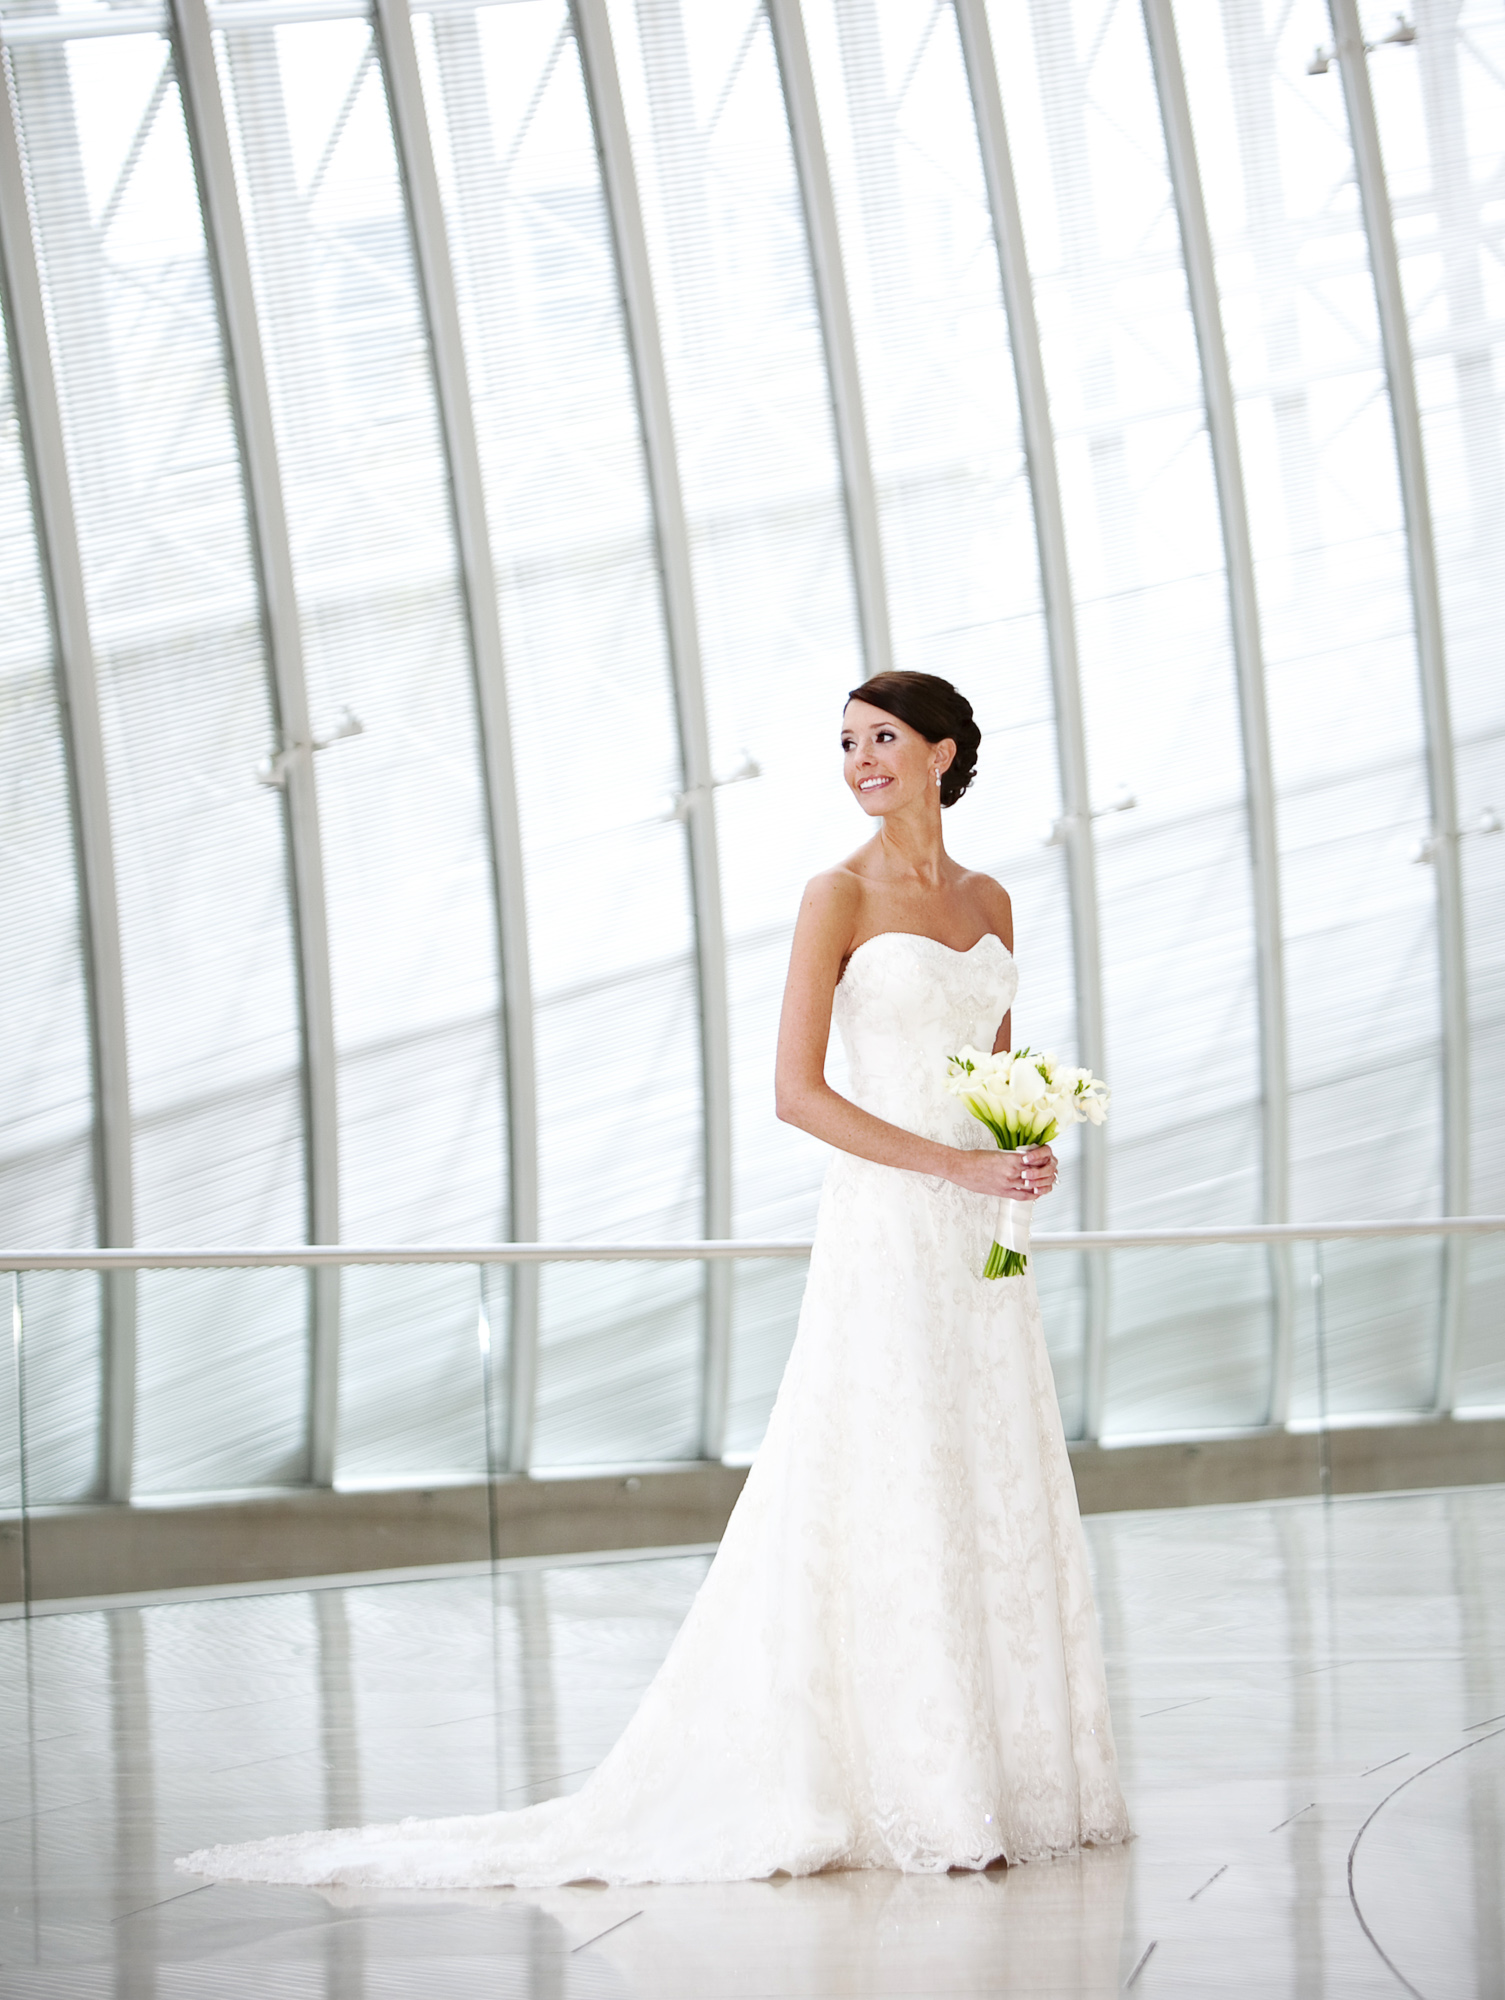 Bridal Shoot at the Morton H. Meyerson Symphony Dallas Texas